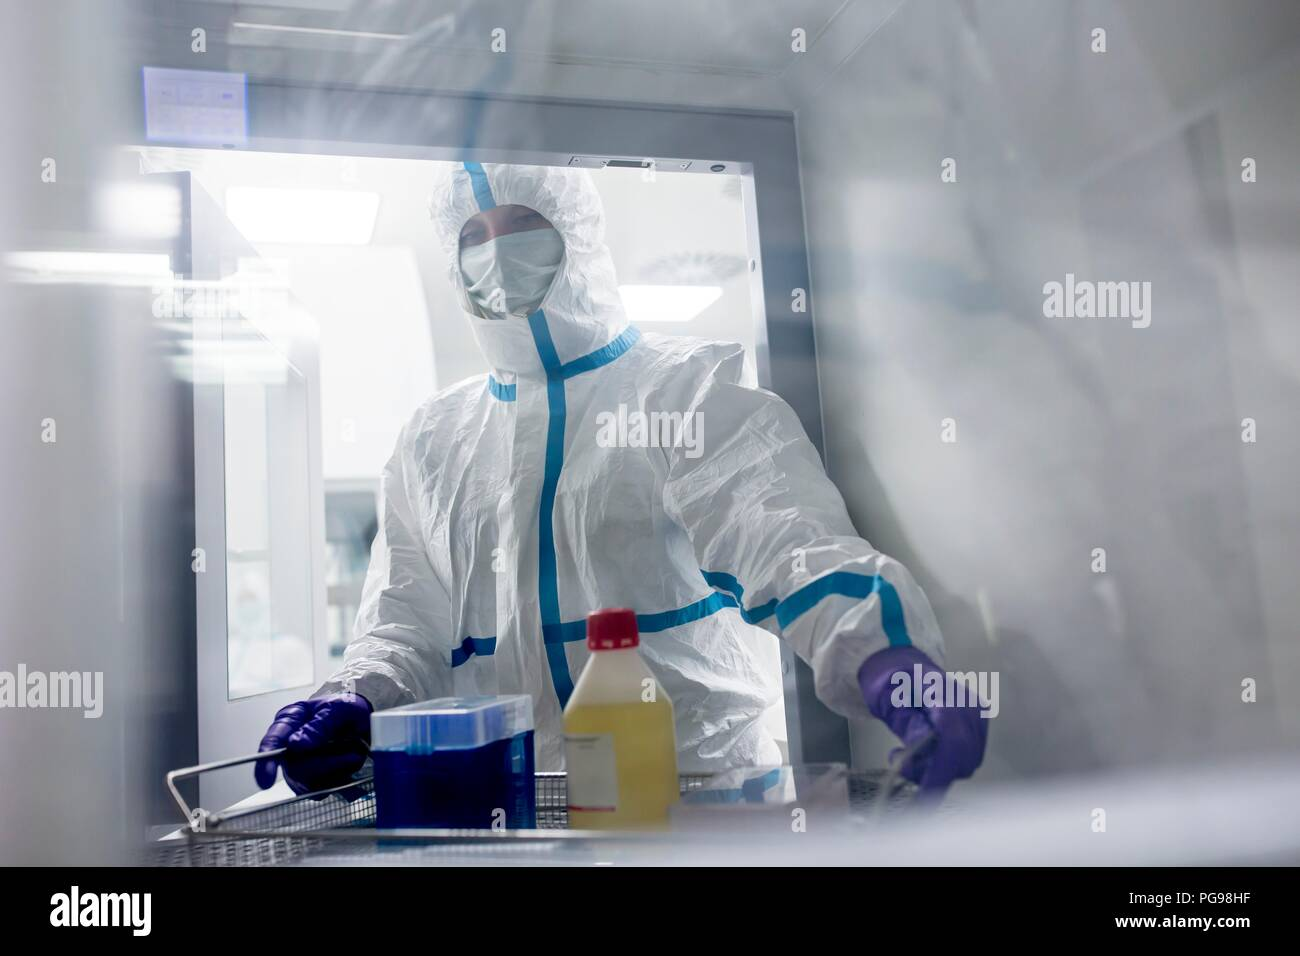 Technician collecting equipment from a transfer hatch in a sterile laboratory that manufactures human tissues for implants. Such implants include bone and skin grafts. - Stock Image